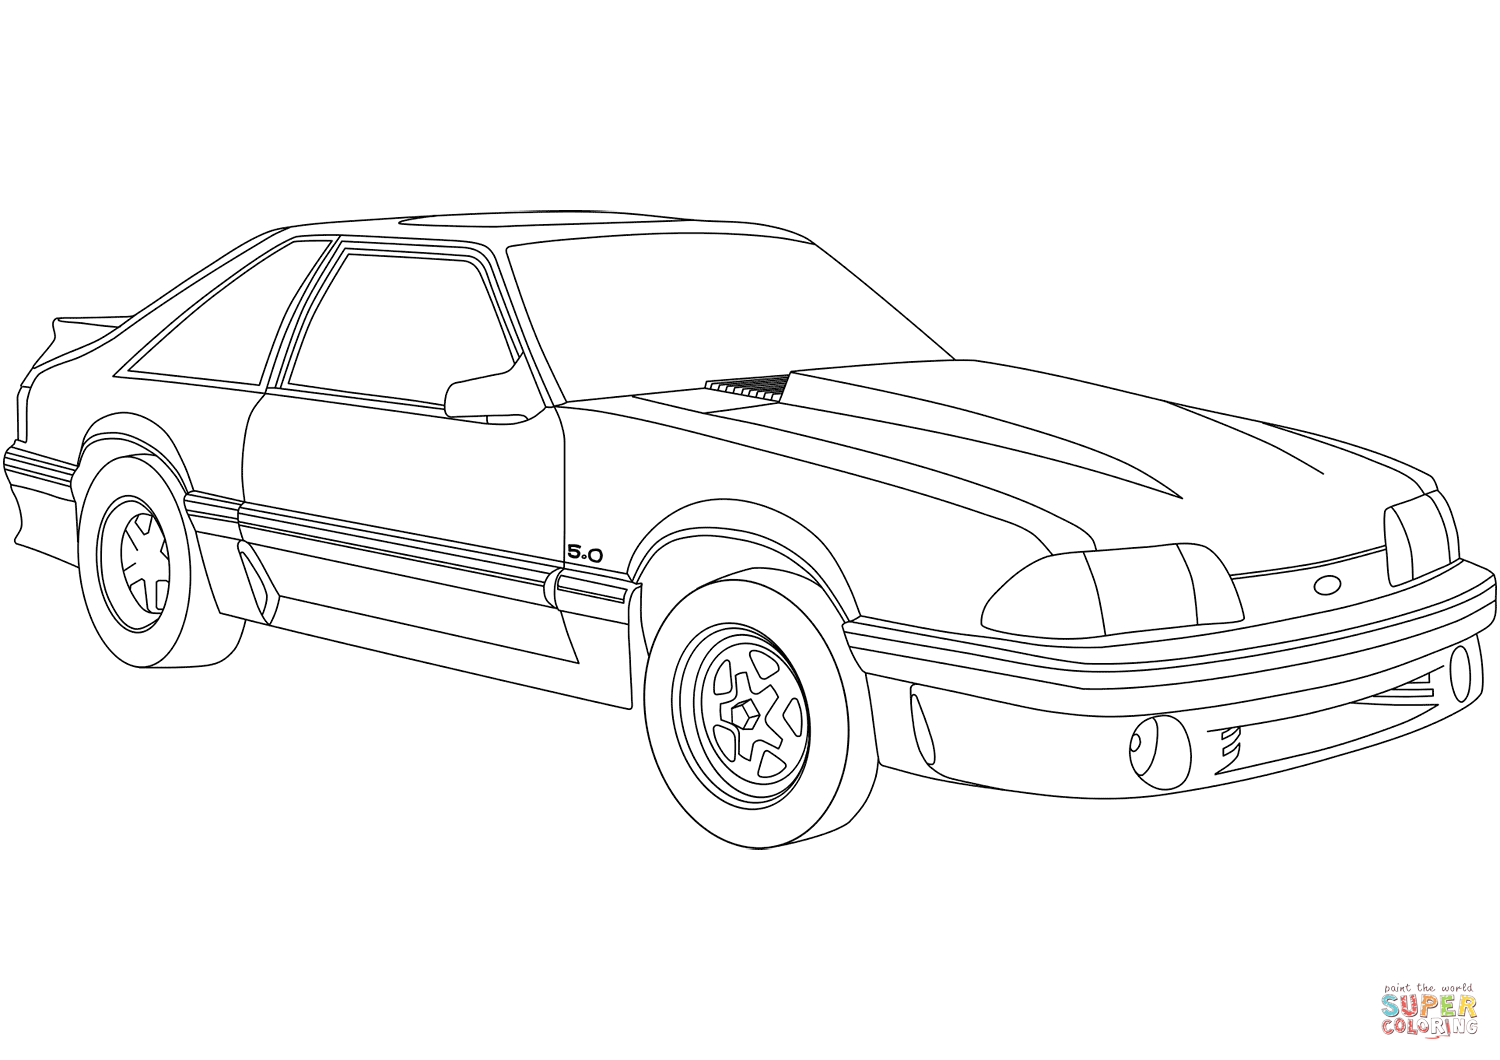 mustang coloring page ford mustang coloring pages coloring pages to download coloring mustang page